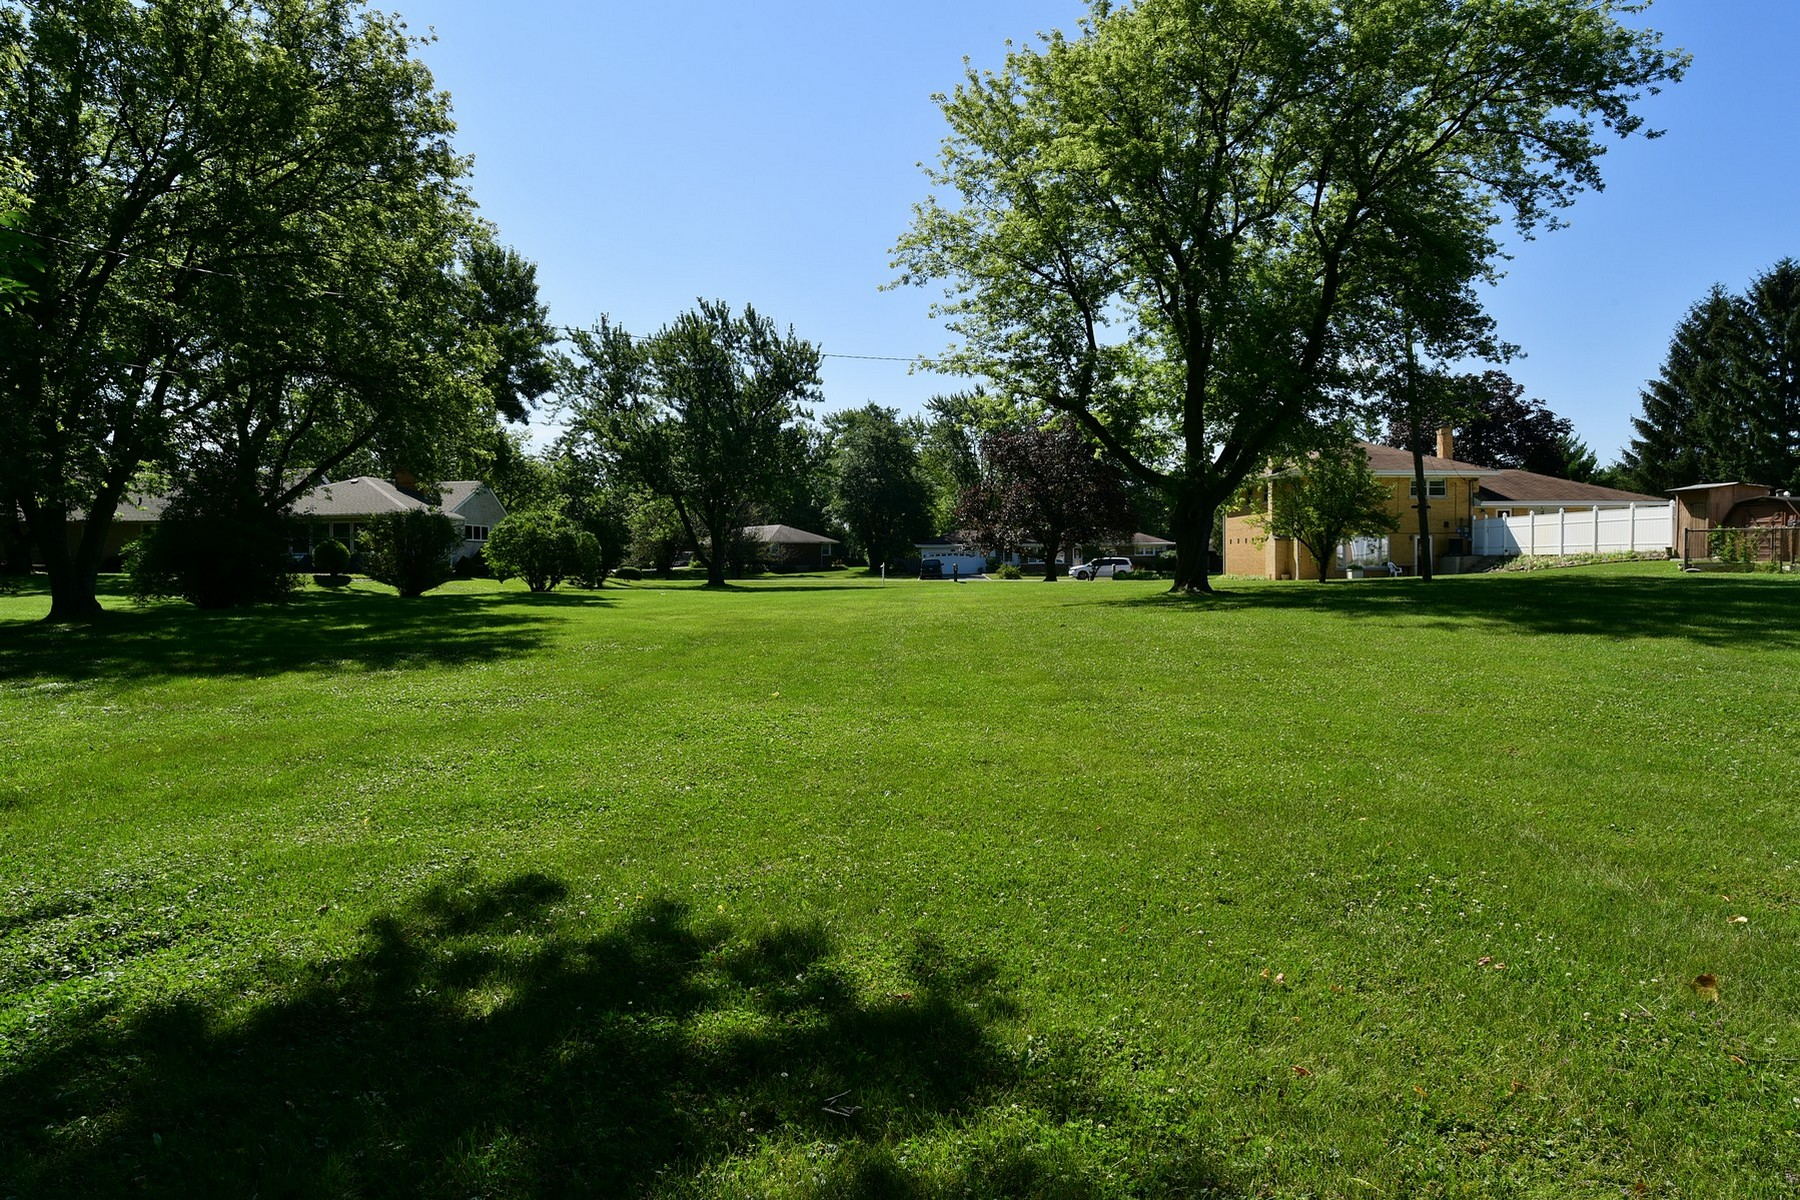 Land for Sale at Lot 1 Vista Avenue, Lombard Lombard, Illinois, 60148 United States